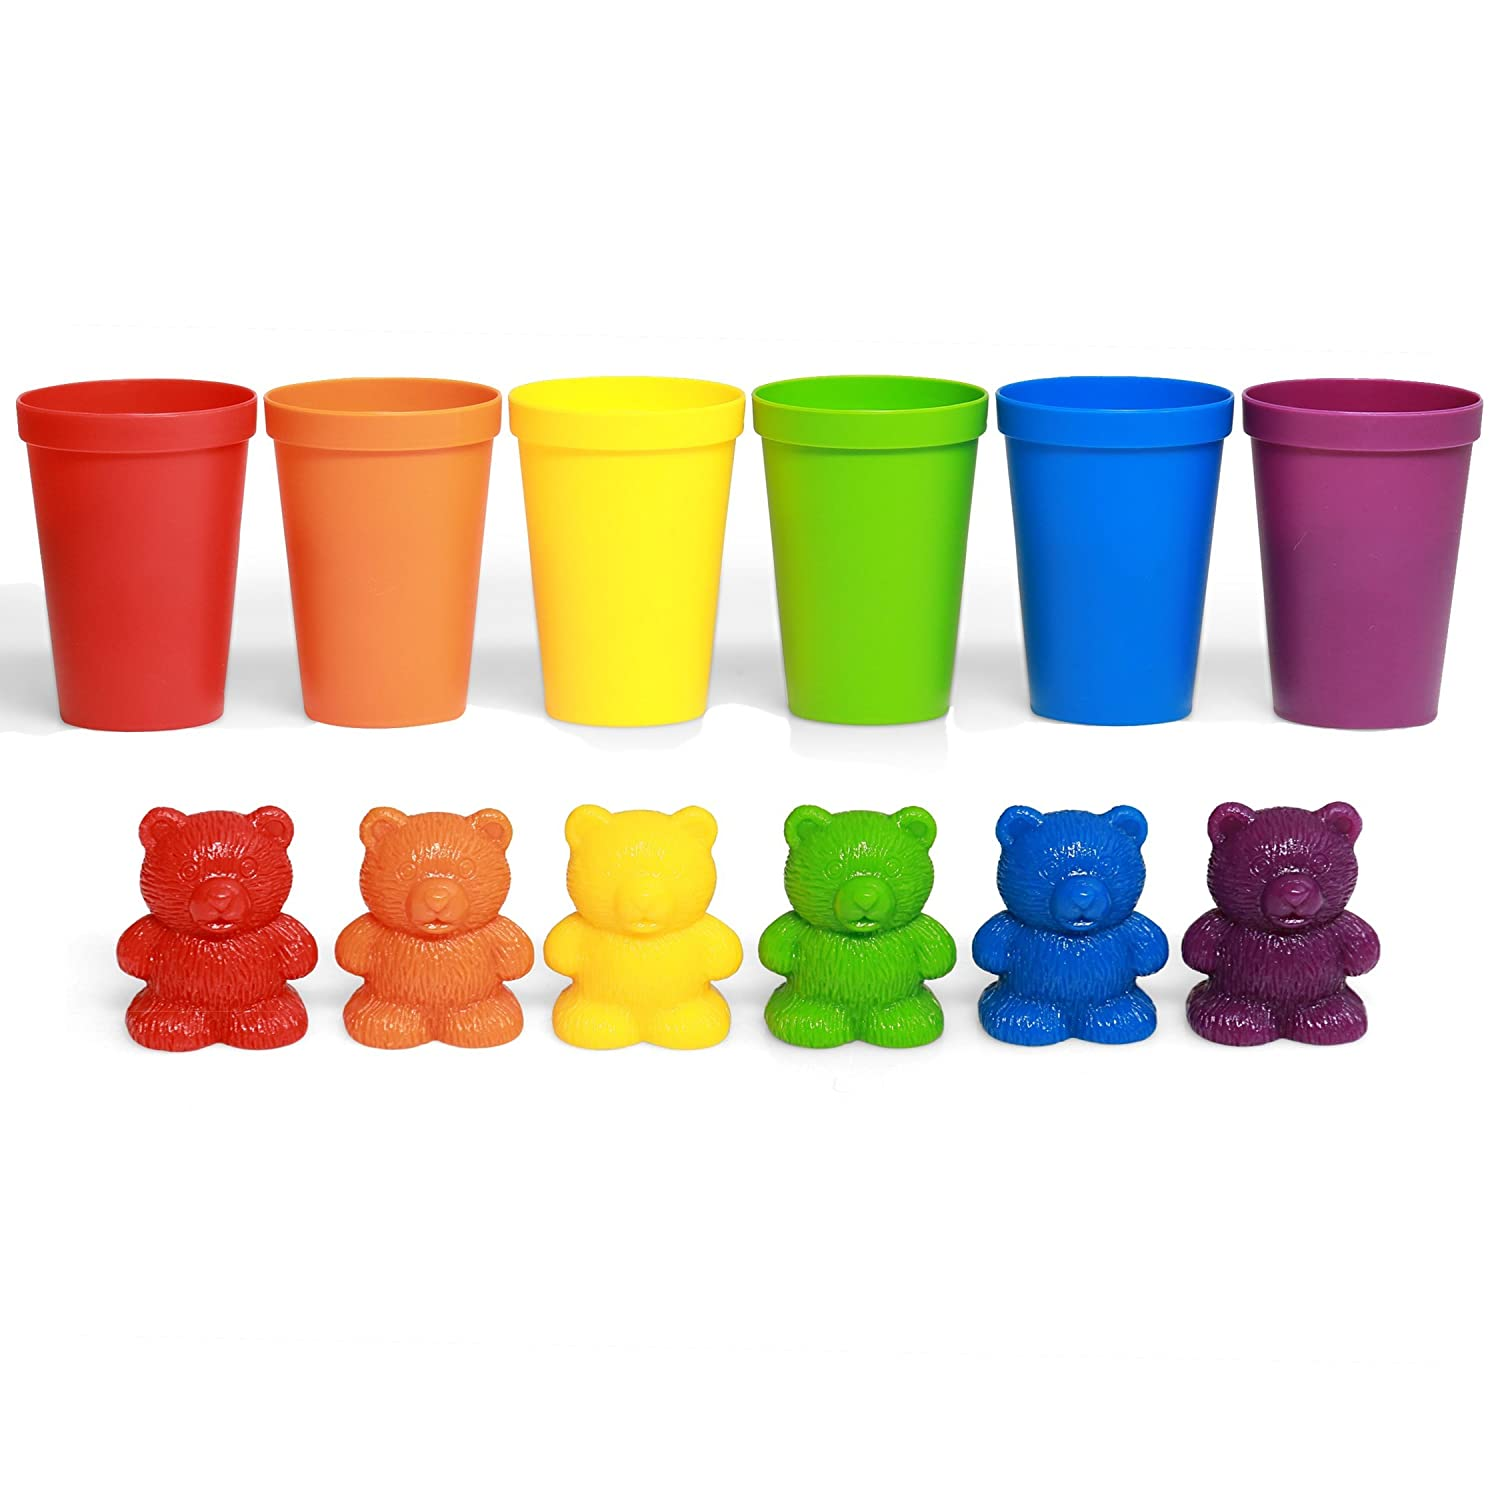 72 Rainbow Colored Counting Bears with Cups for Children, Montessori Toddler Learning Toys, Colorful Educational Tool for Learning STEM Education, Mathematics, Counting and Sorting Toys for Autism Review